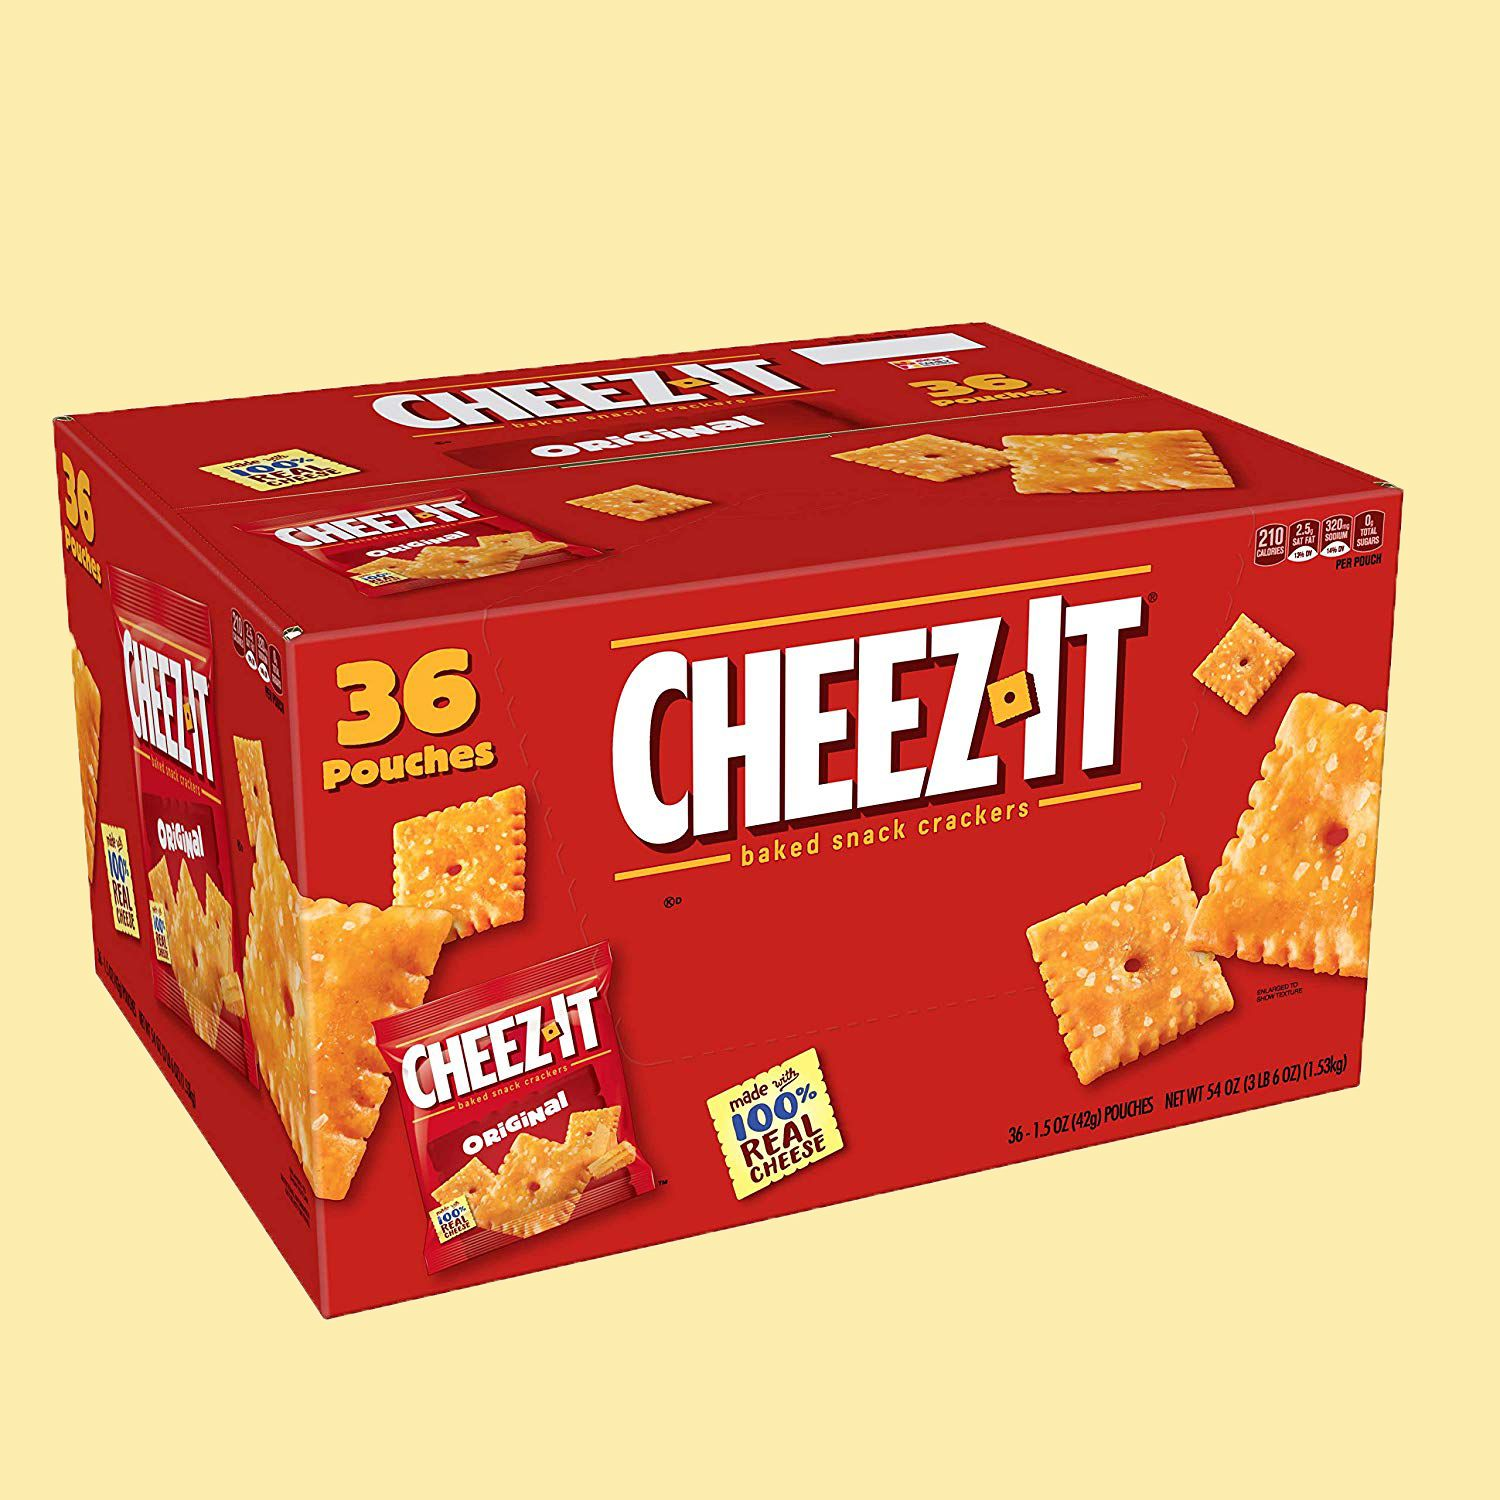 The Best Amazon Prime Day Deal Is This Giant $8 Cheez-Its Box